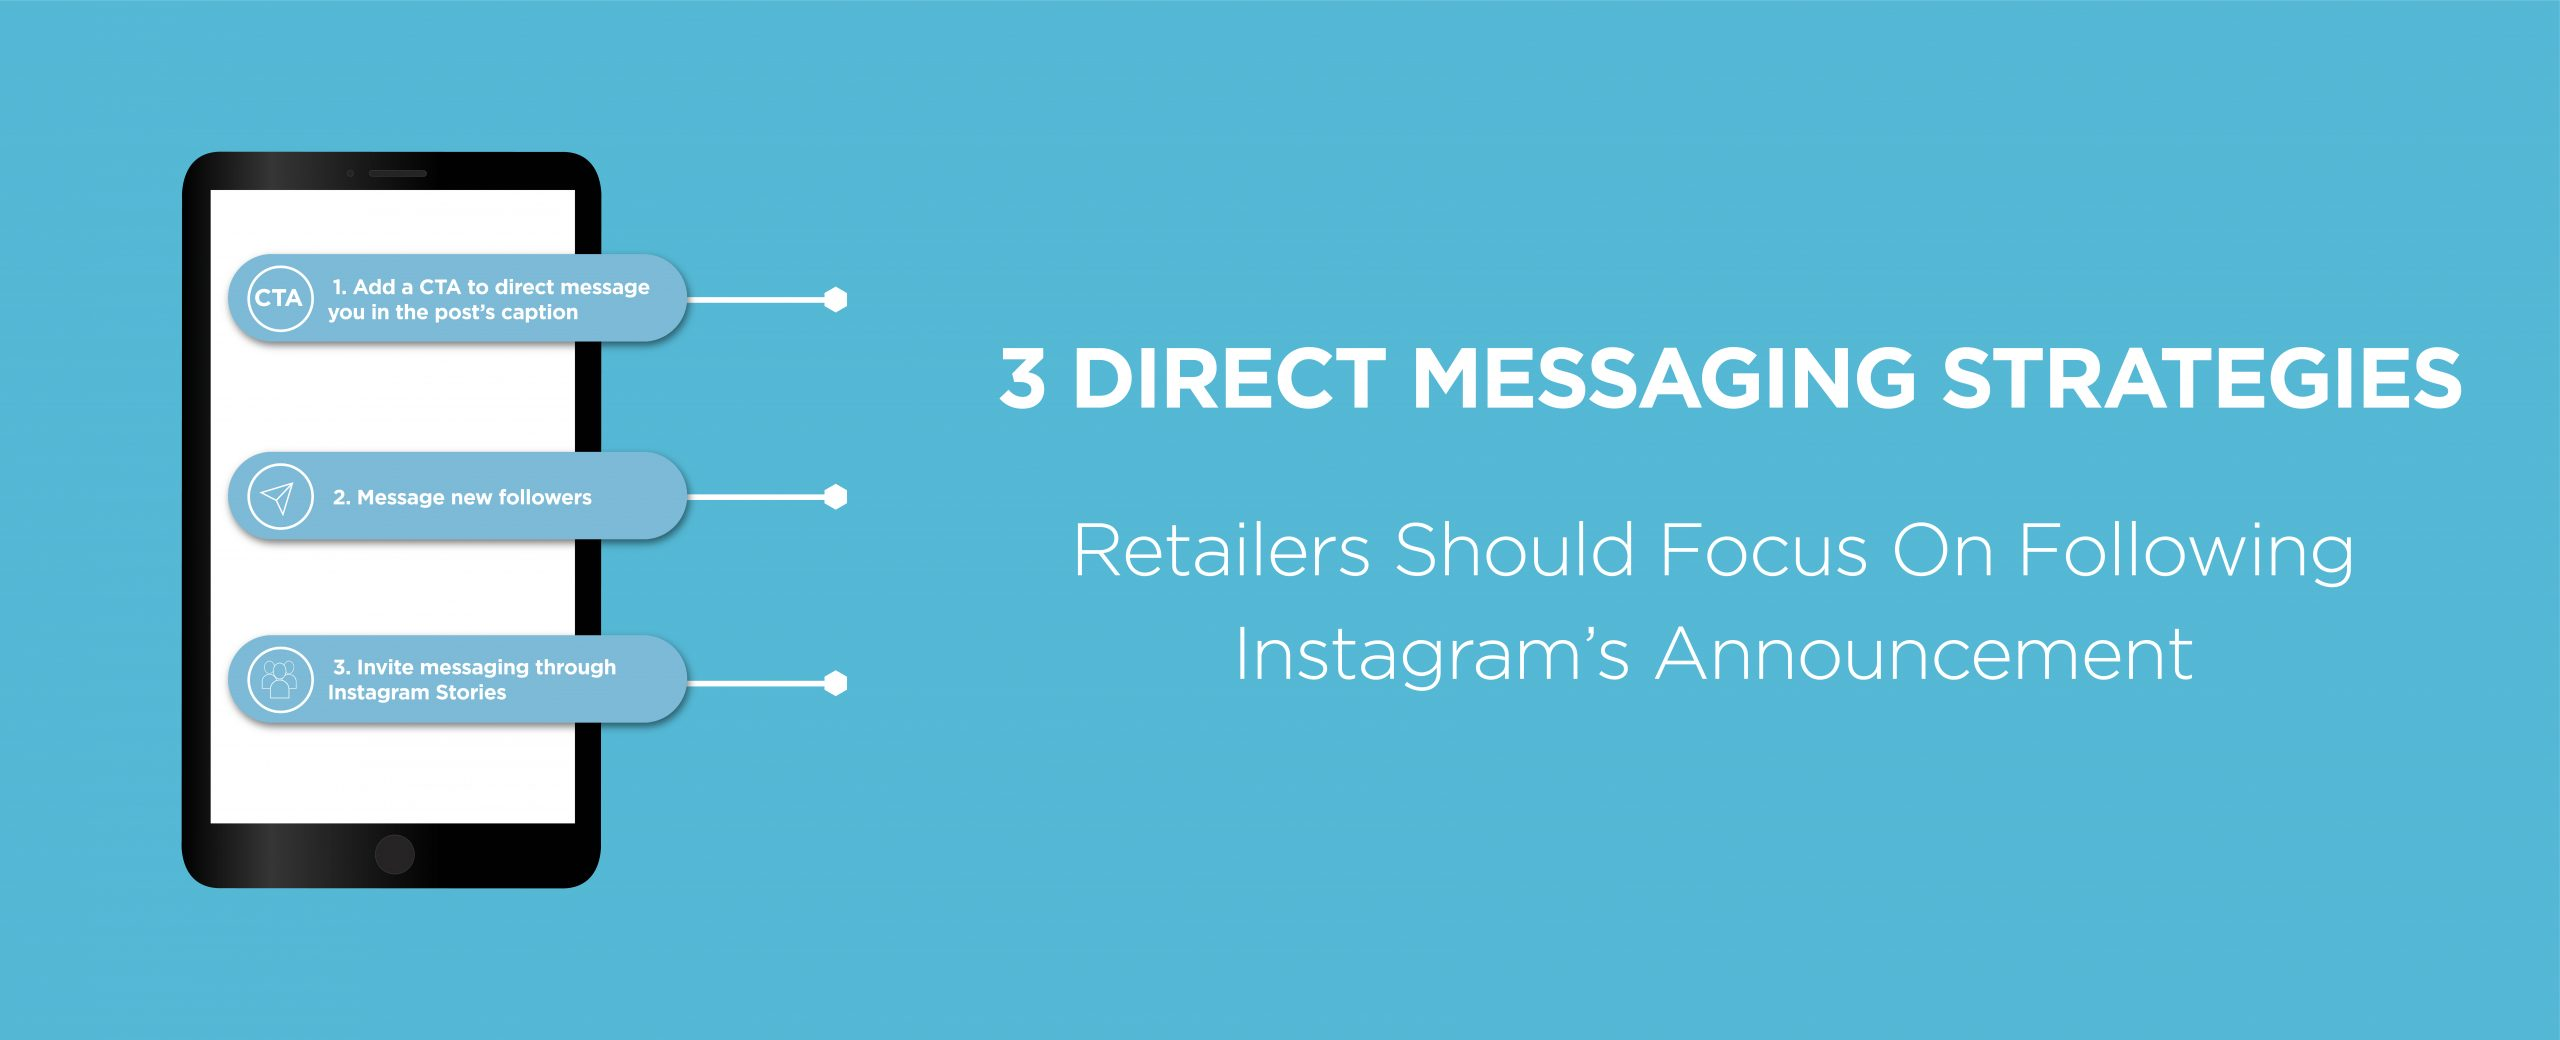 IG Direct Messaging Tips for Retailers